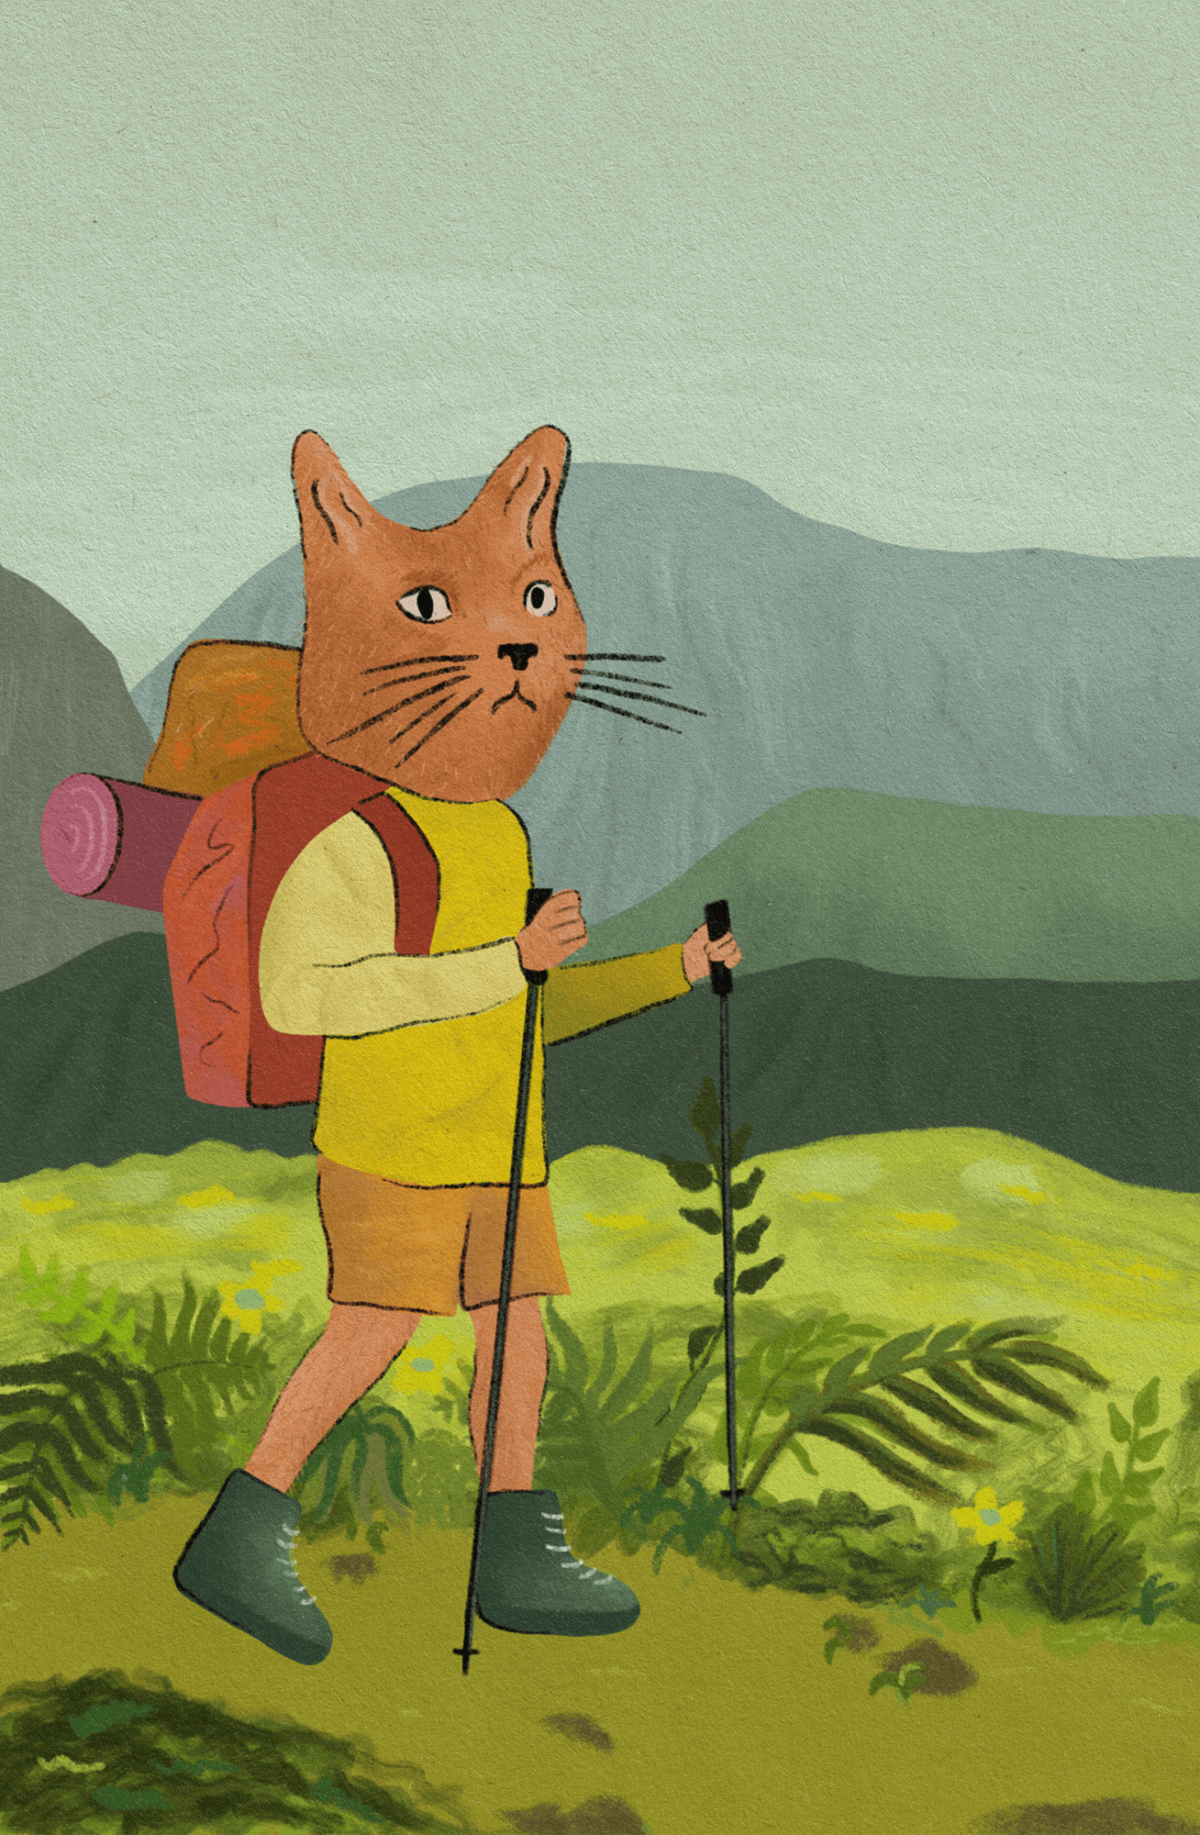 An illustration of a cat with a backpack and hiking polls in front of a mountainscape